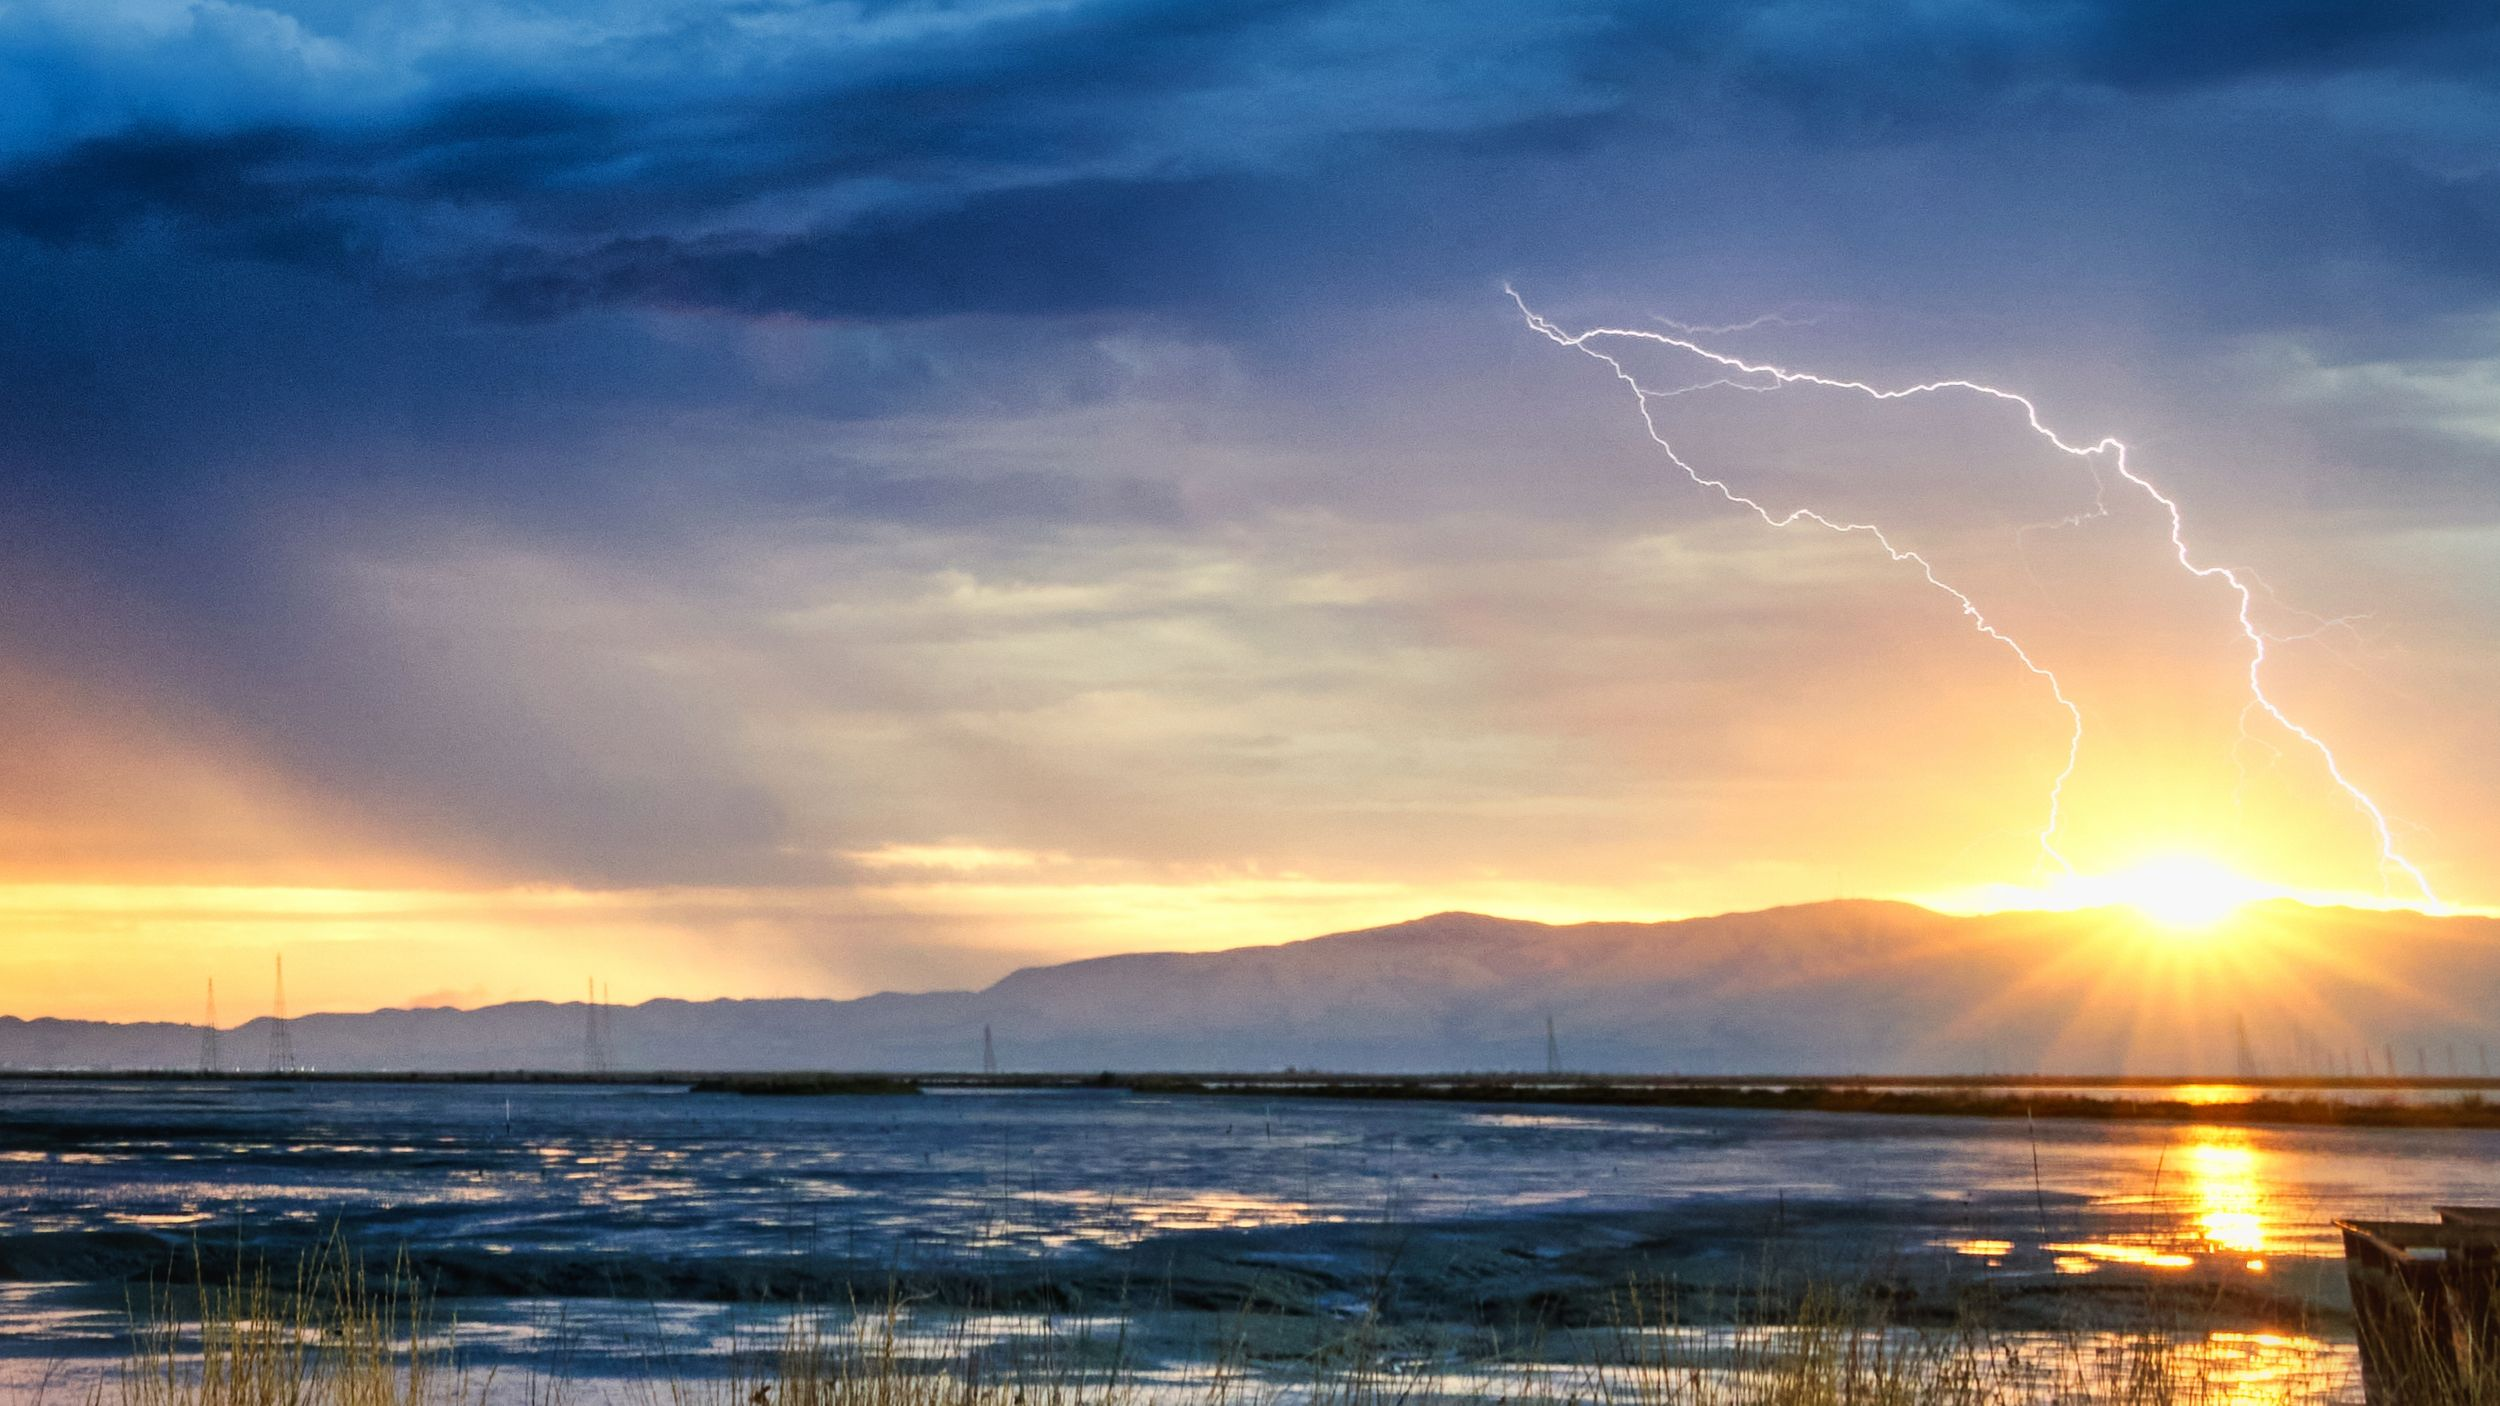 Rare thunderstorm in the Bay Area at sunrise, viewed from the Palo Alto Baylands